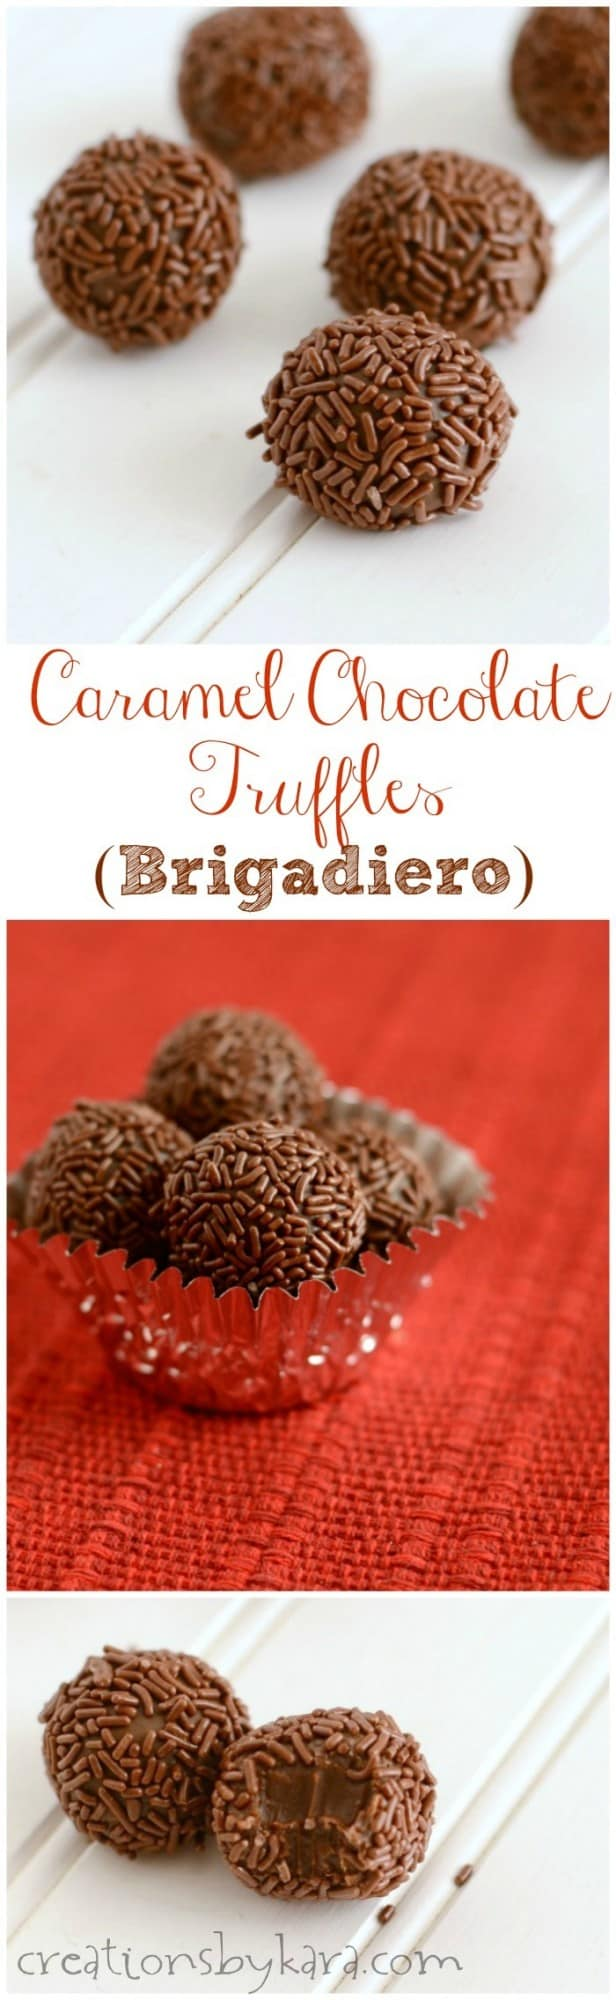 Brigadeiro candy recipe collage